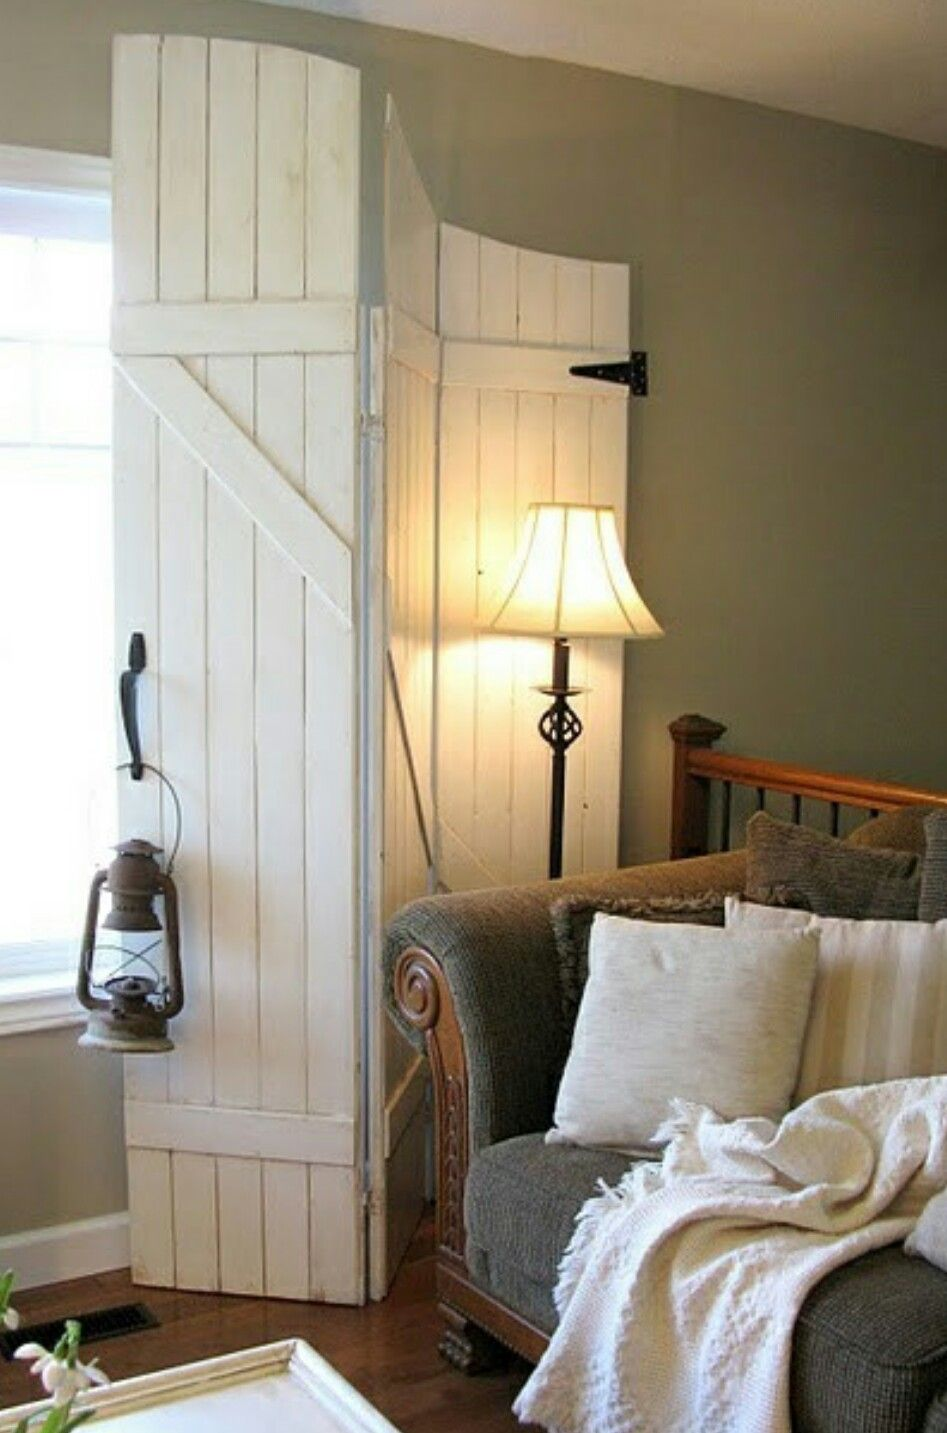 Barn window decor  window covers for inside  all wooden doors  pinterest  wood